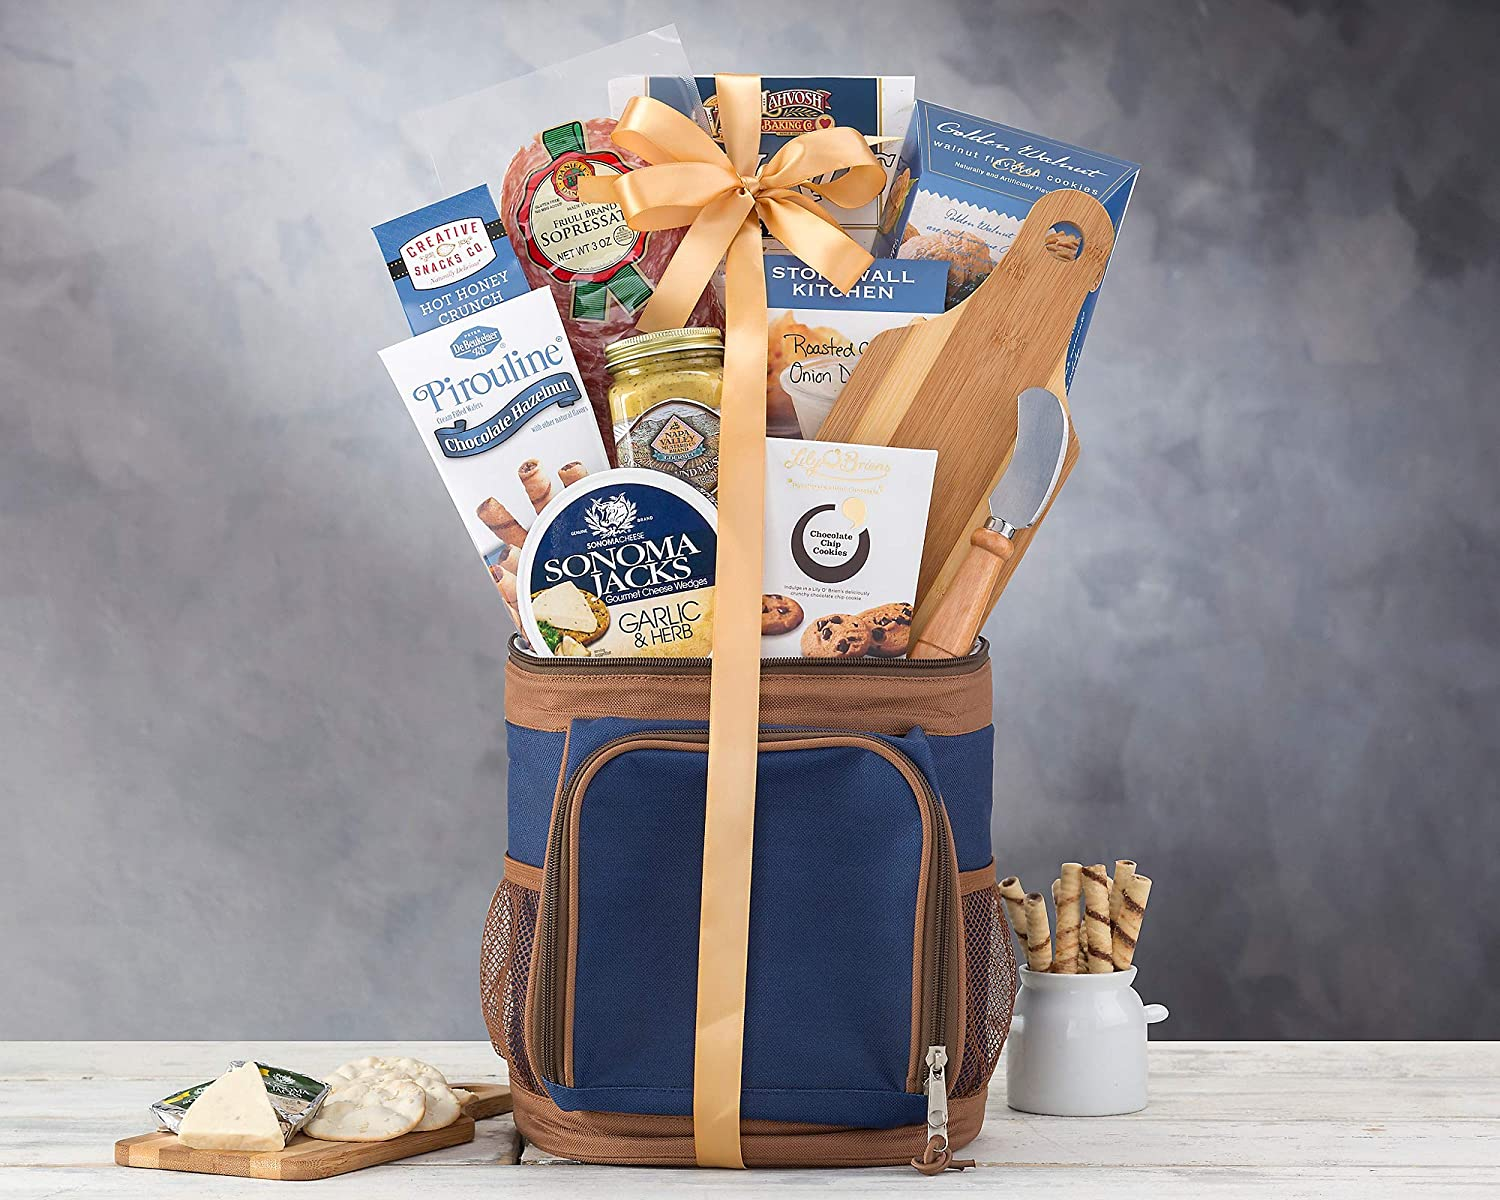 c9f74542bbbe Hole in One Golf Gift Basket with Golf Cooler by Wine Country Gift Baskets  Loaded With...